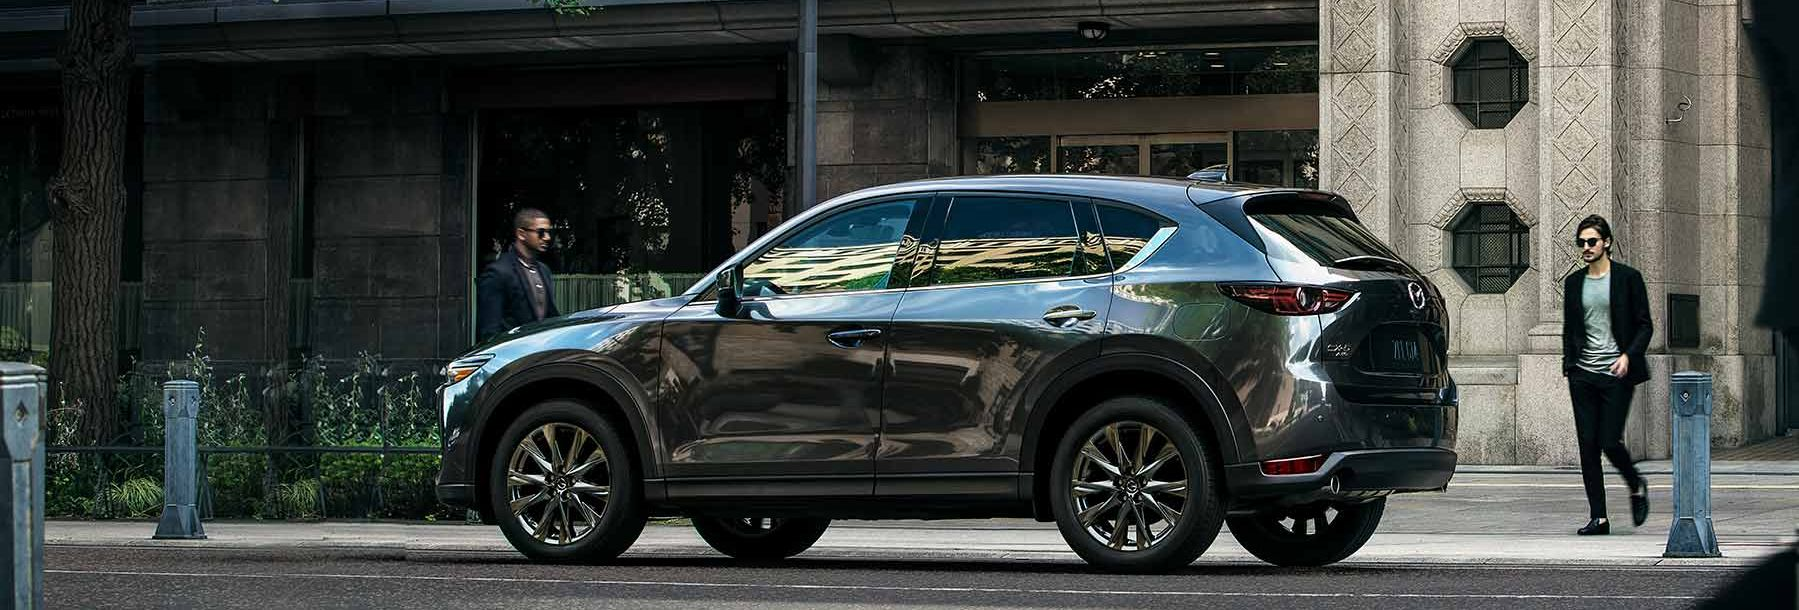 2019 Mazda CX-5 Financing in Wantagh, NY